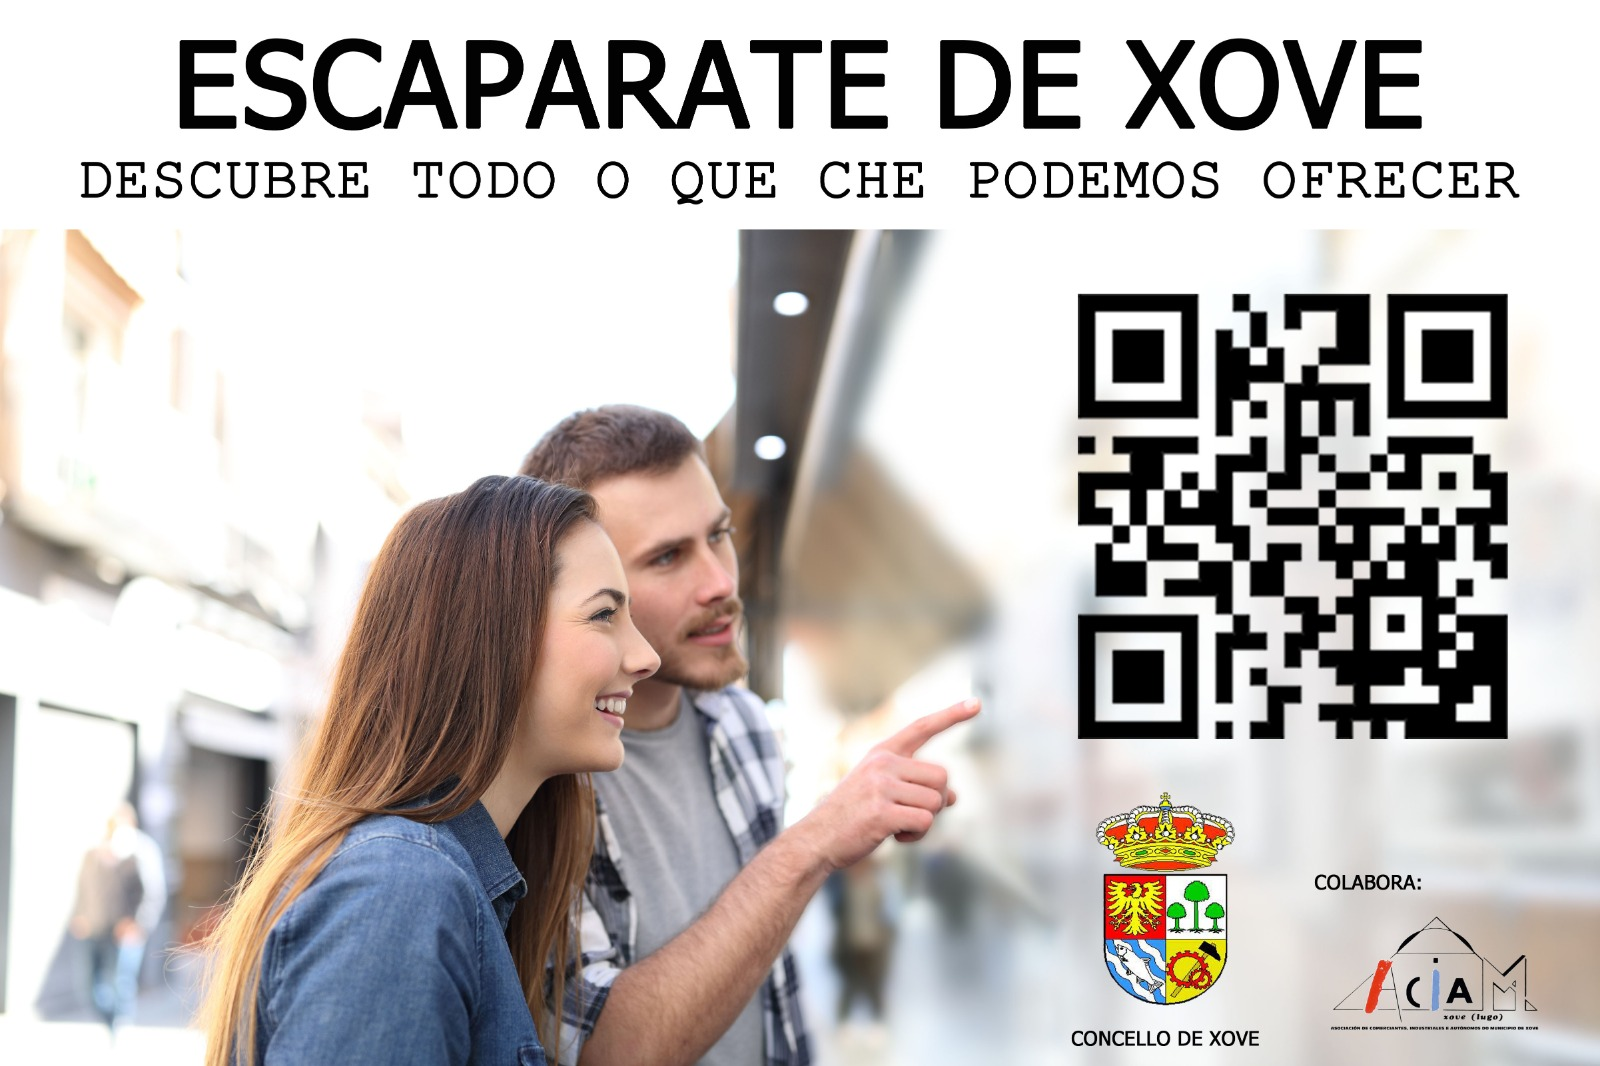 ESCAPARATE DE XOVE